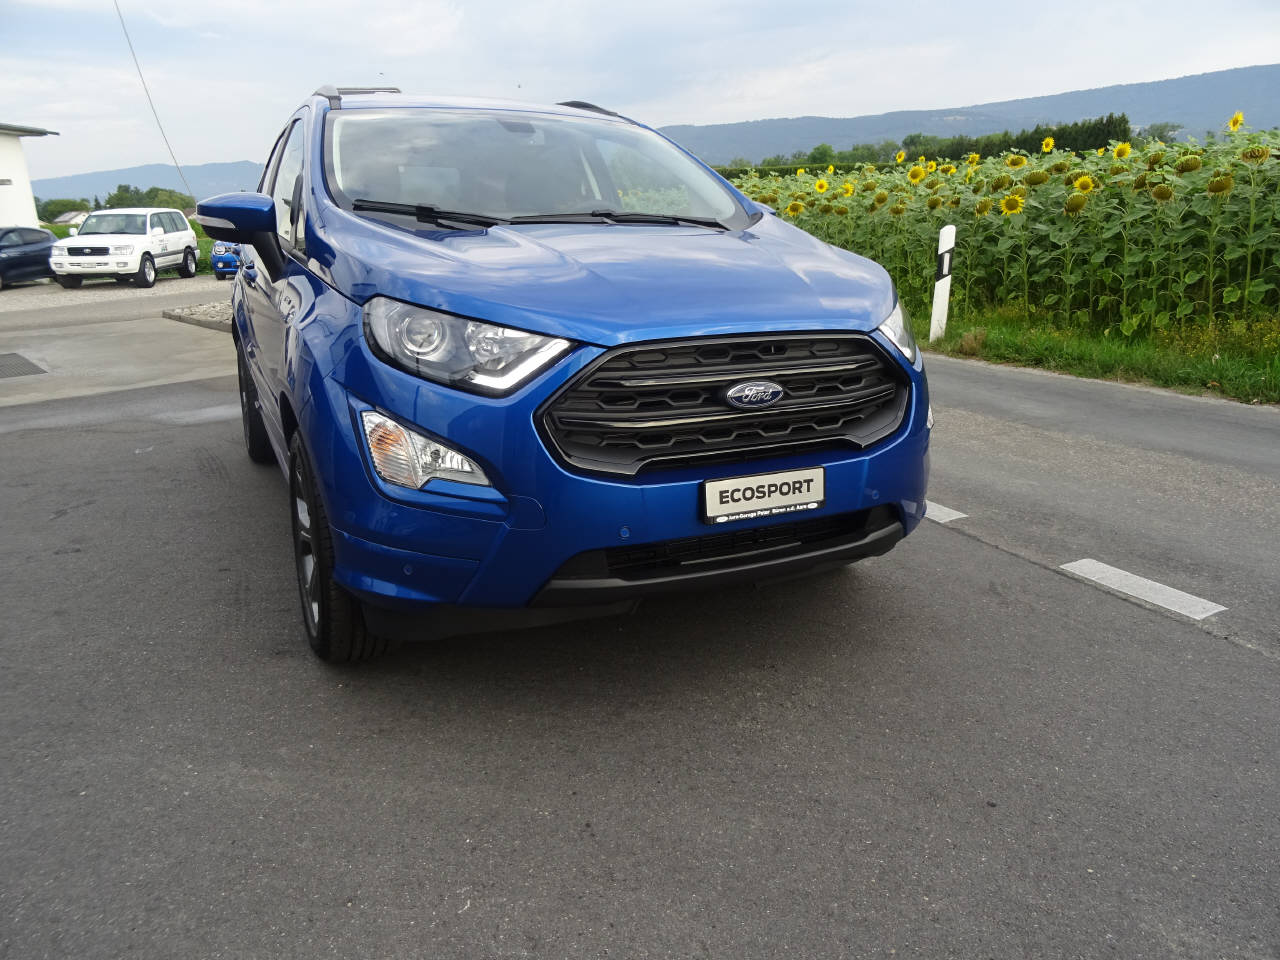 Kindersitz Test Suv Buy Suv Ford Ecosport 1 5 Tdci St Line 4x4 On Carforyou Ch